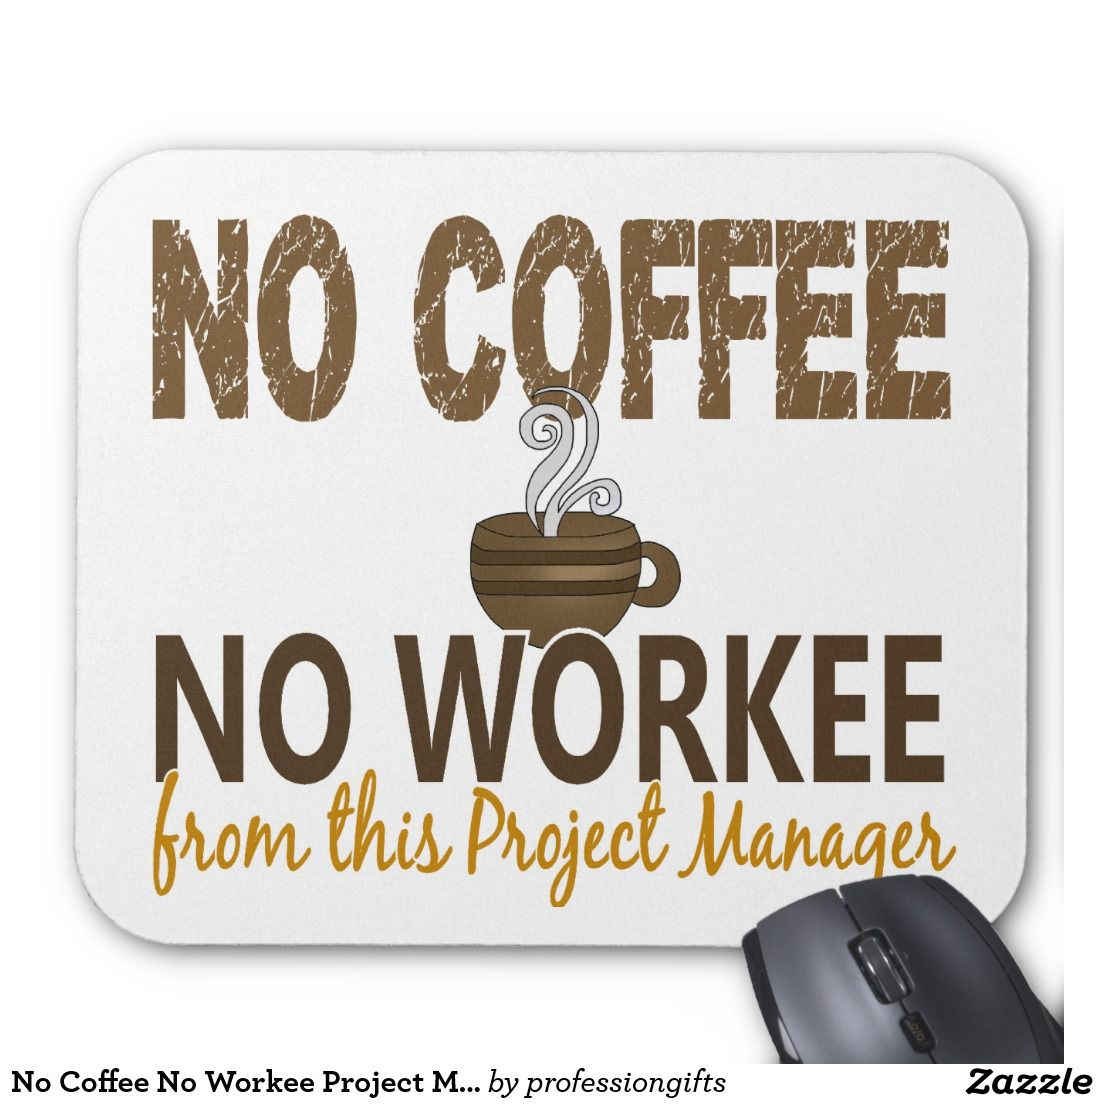 No coffee no workee project manager mouse pad